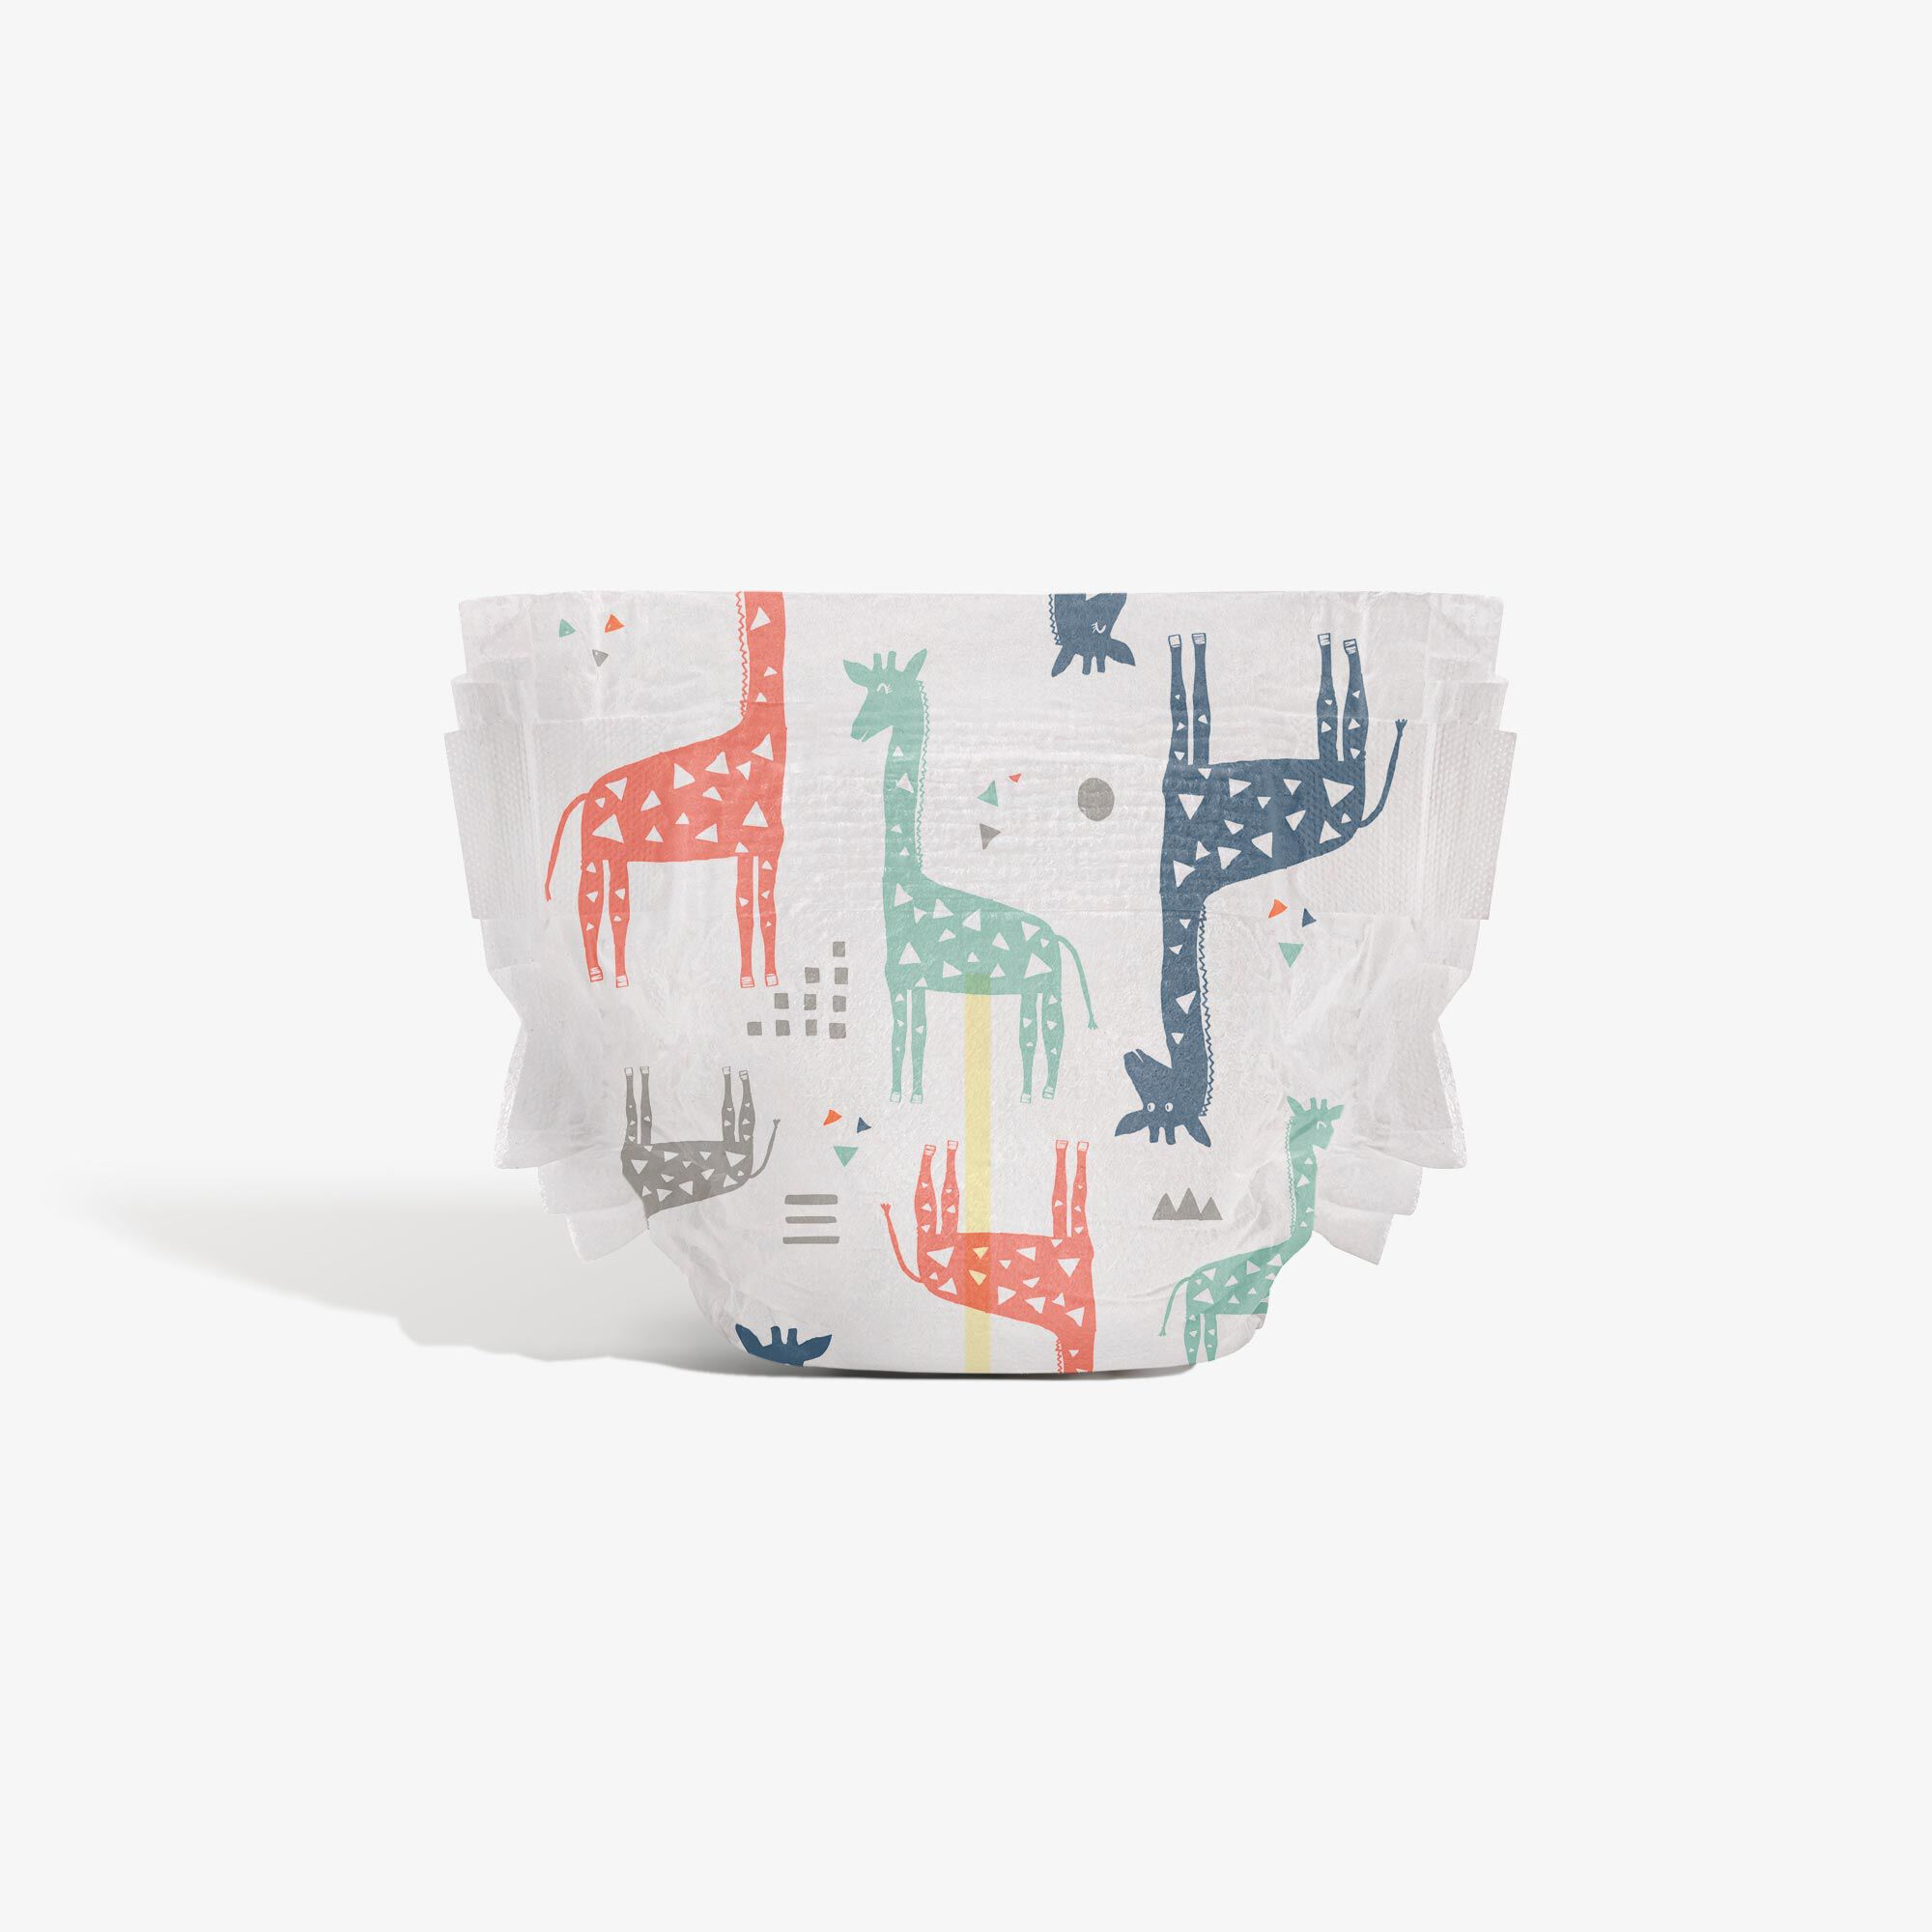 Clean Conscious Diaper, Multi-Colored Giraffes, Size 2